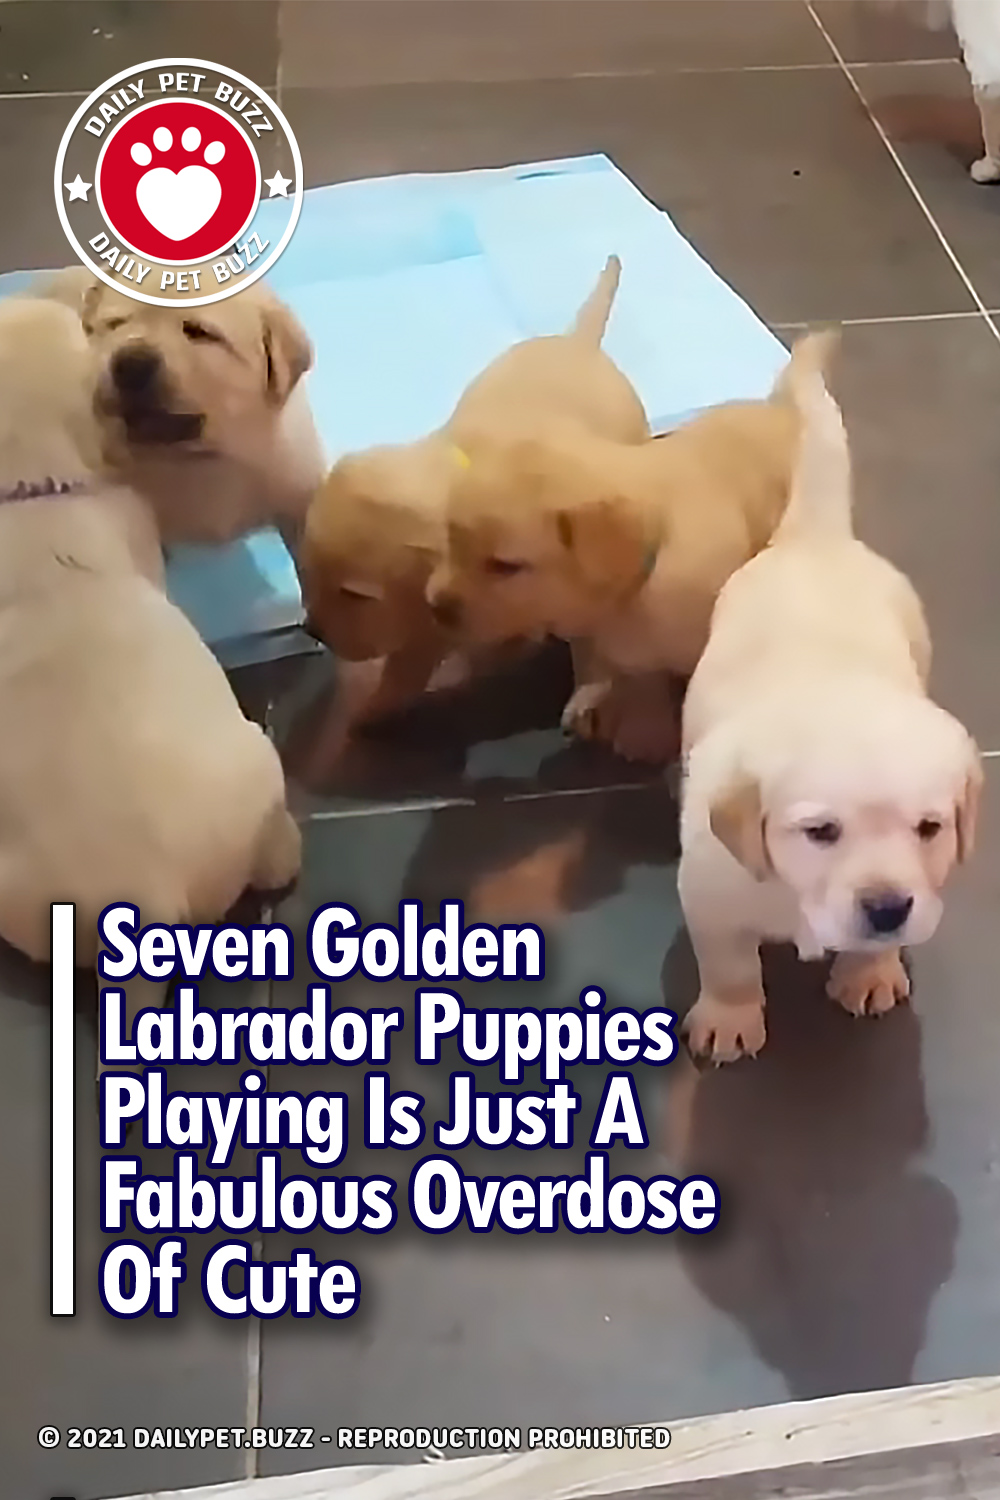 Seven Golden Labrador Puppies Playing Is Just A Fabulous Overdose Of Cute